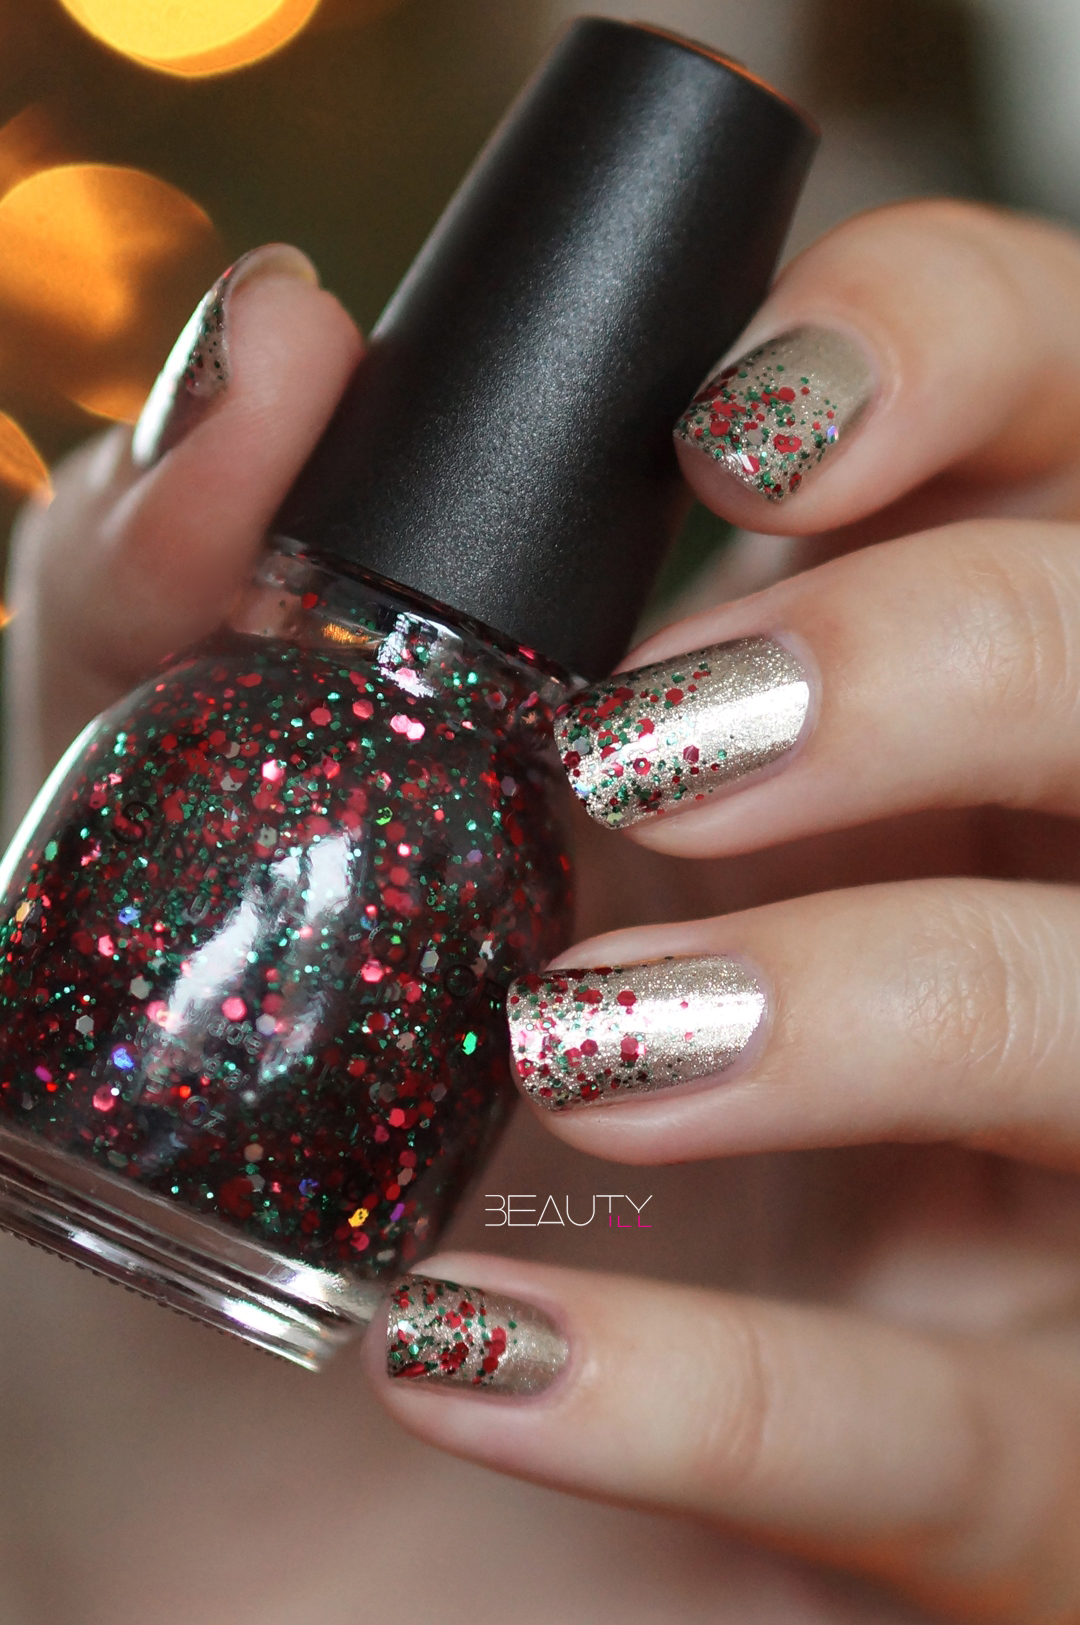 notd-christmas-nailart-holiday-rebel-jiggle-hi-jiggle-low-5